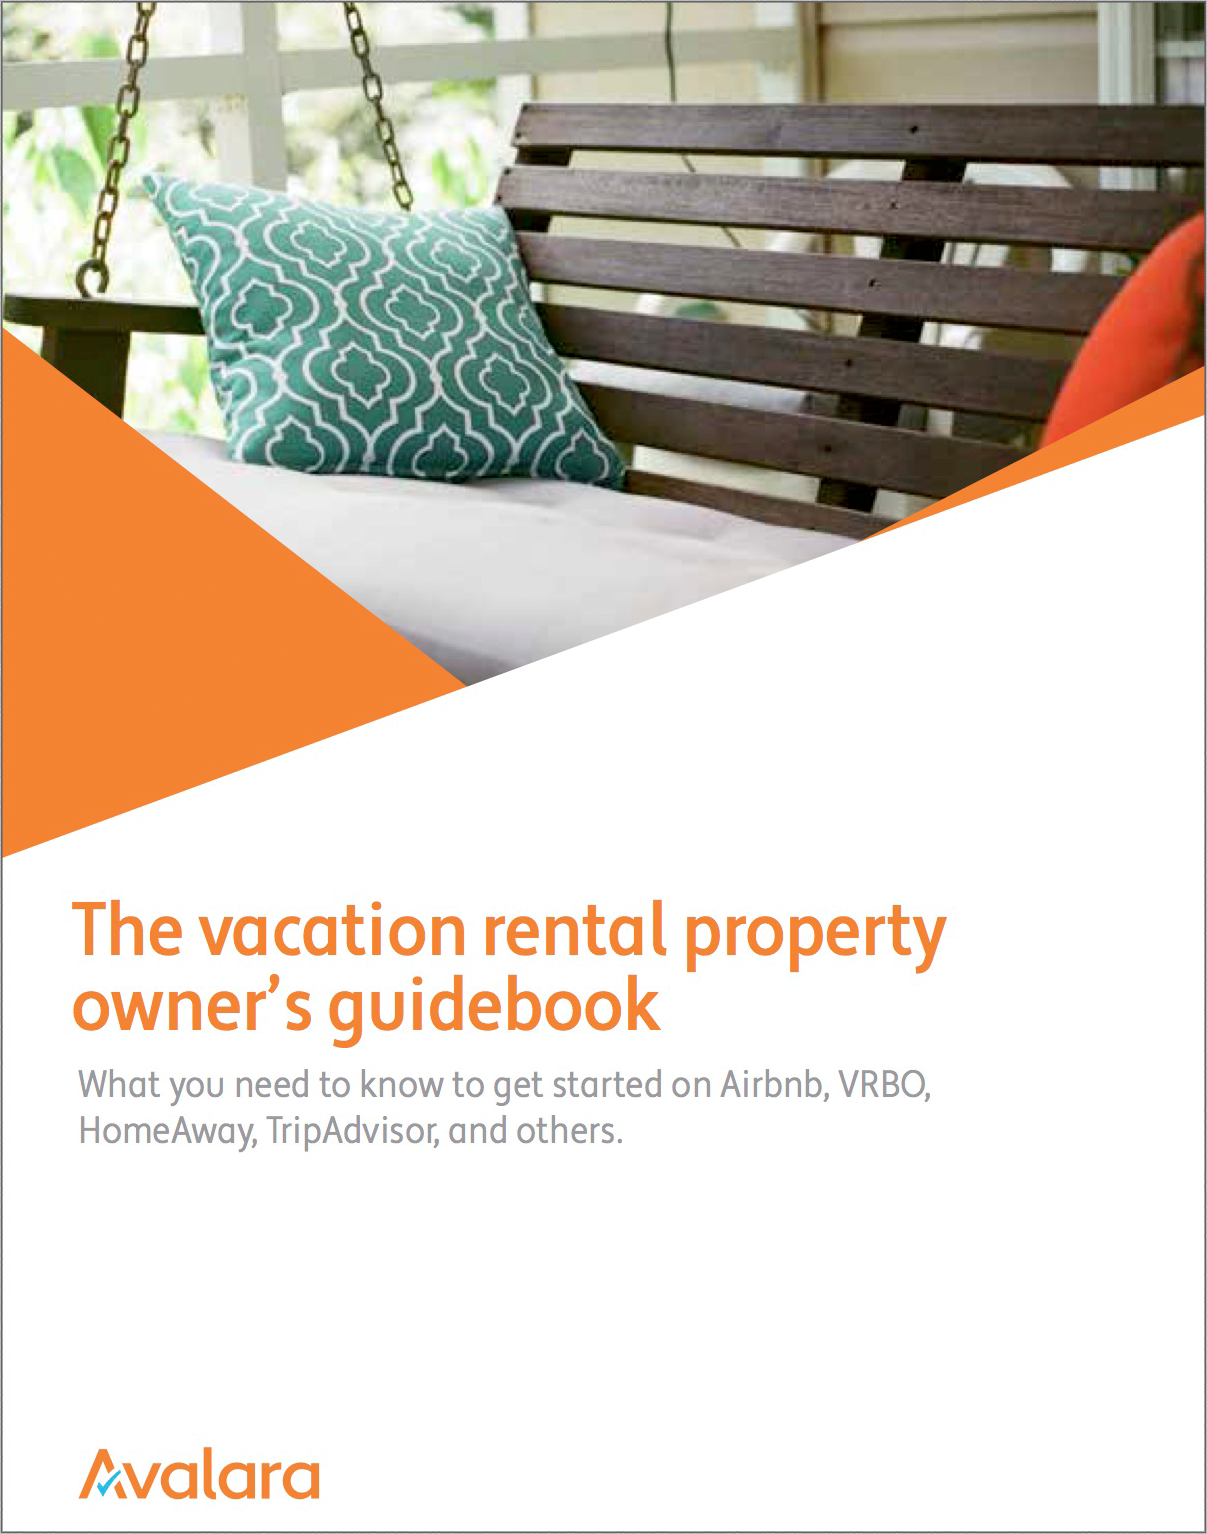 The Vacation Rental Property Owner